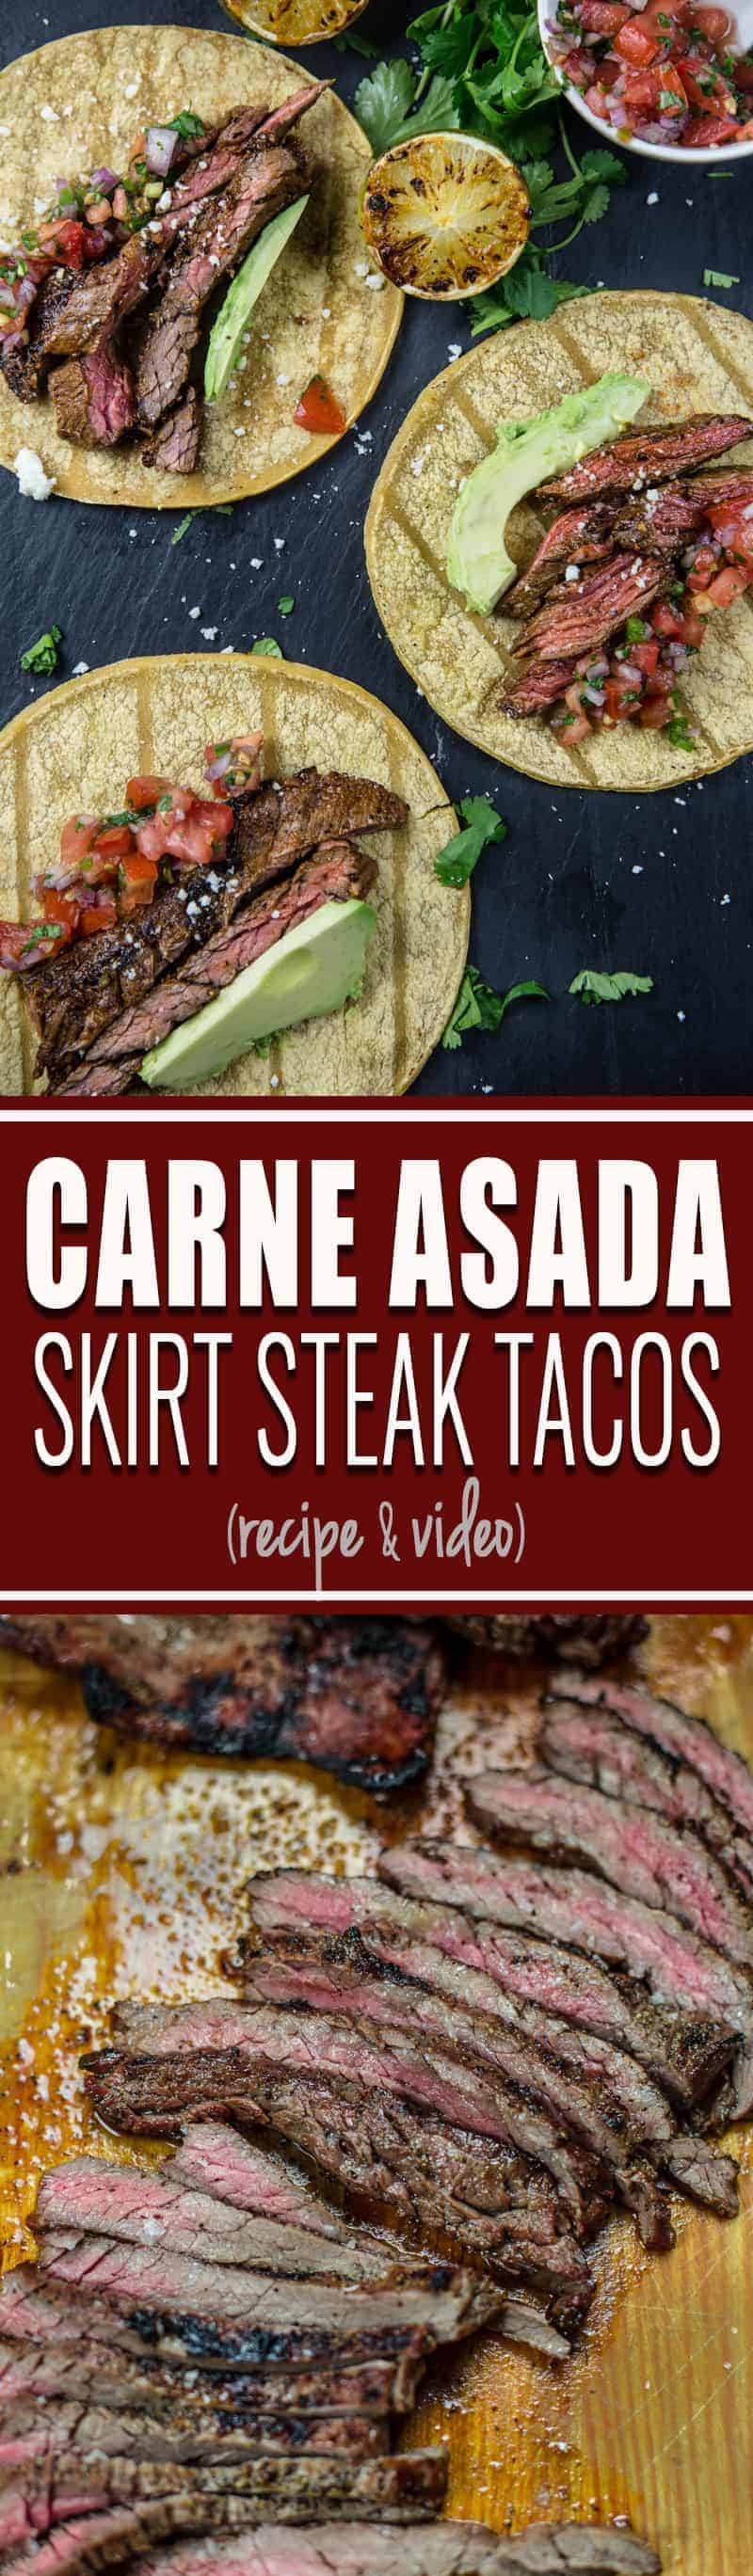 Carne Asada (Marinated Grilled Skirt Steak Tacos)